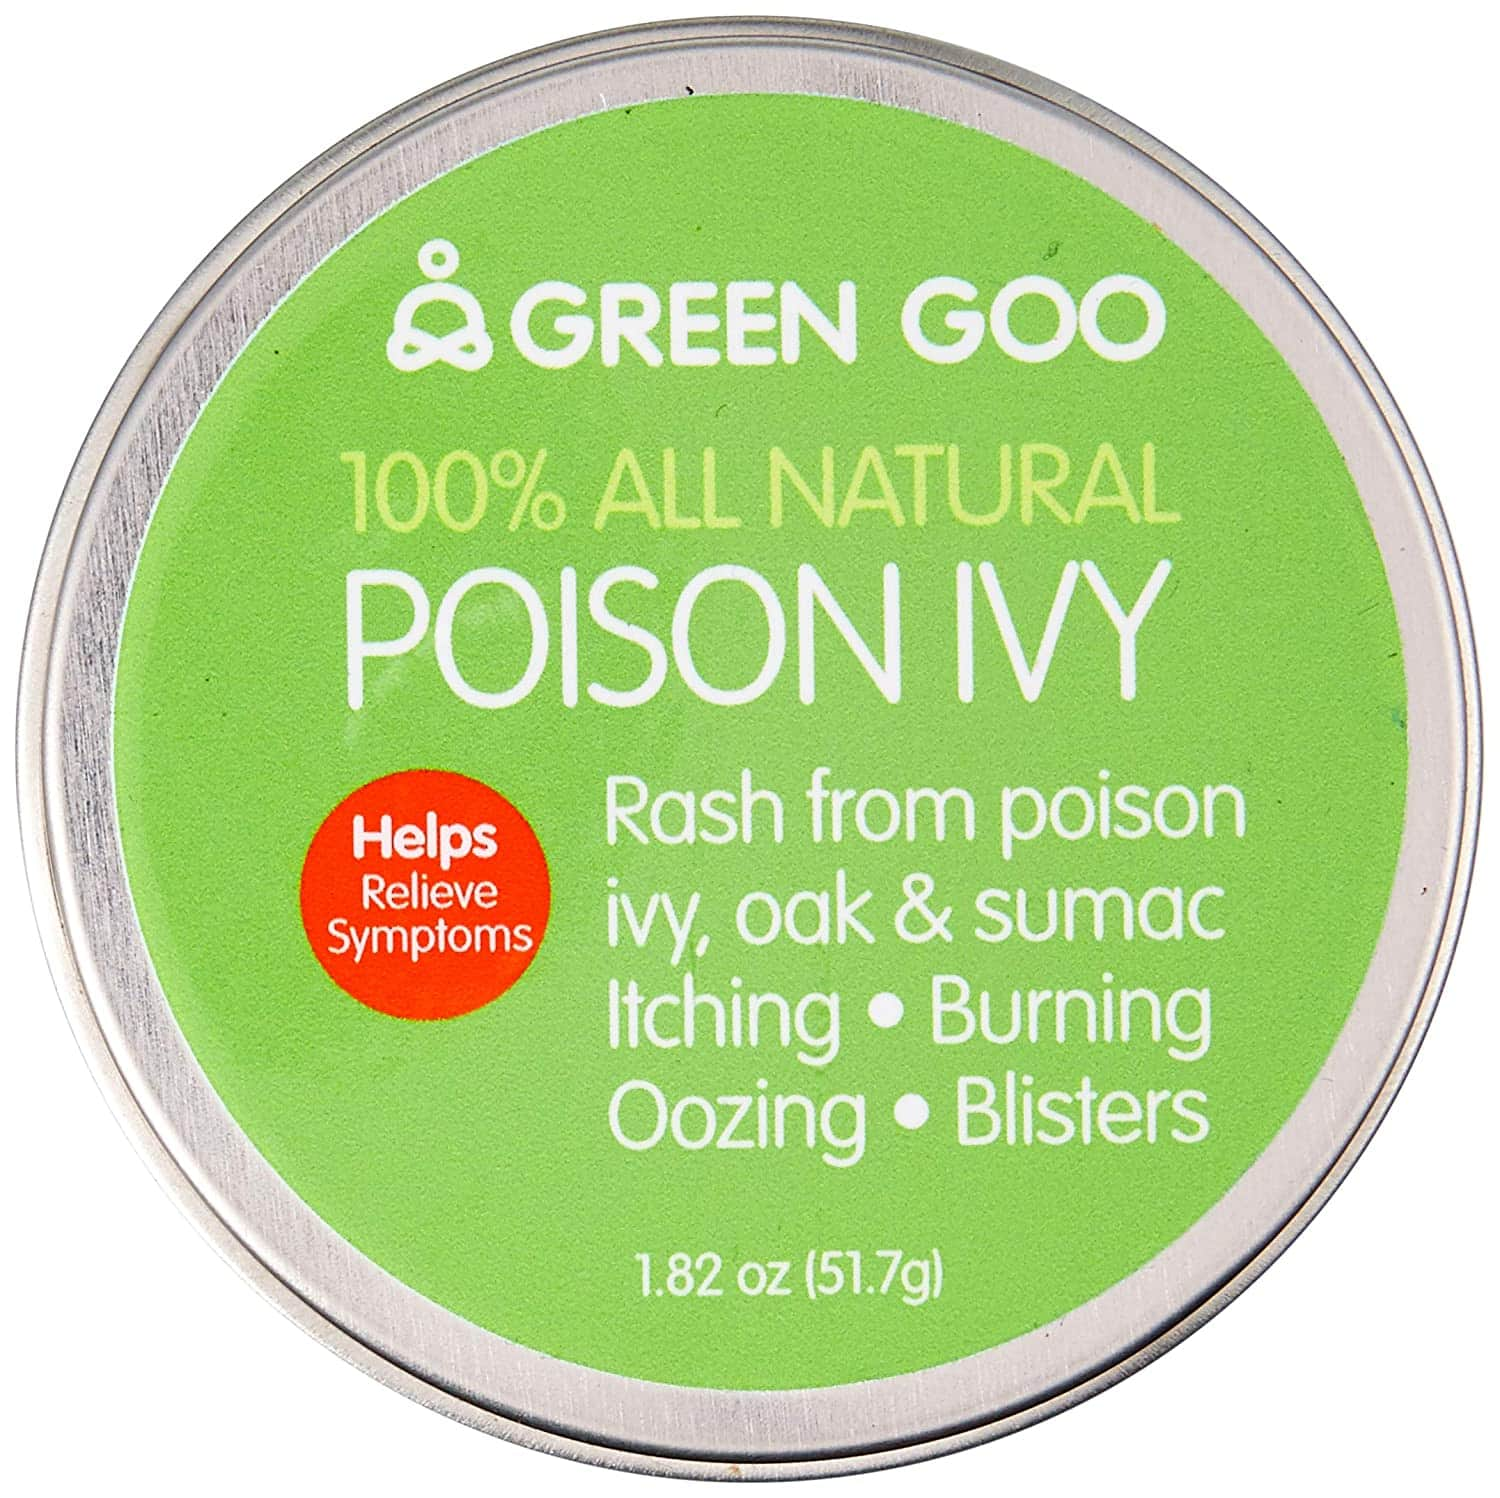 1.82-Oz Green Goo Natural Skin Care Poison Ivy Treatment $4.30 + Free Shipping w/ Prime or $25+